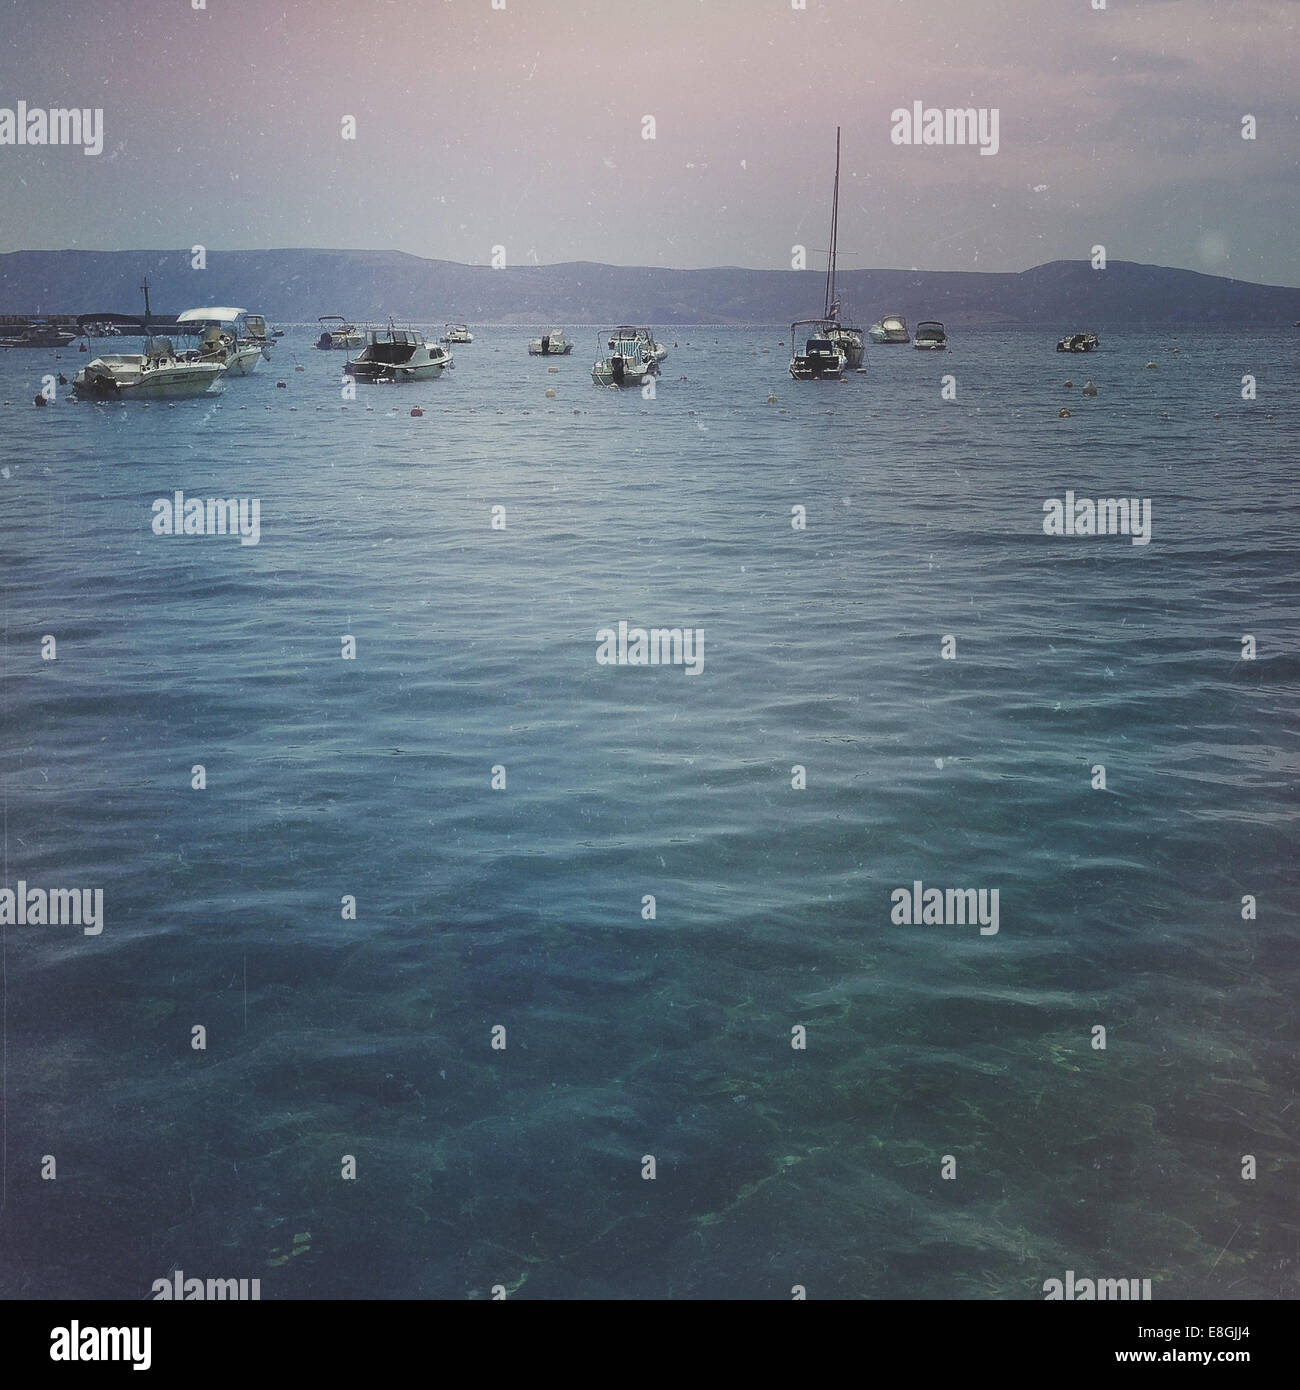 Boats anchored at sea - Stock Image